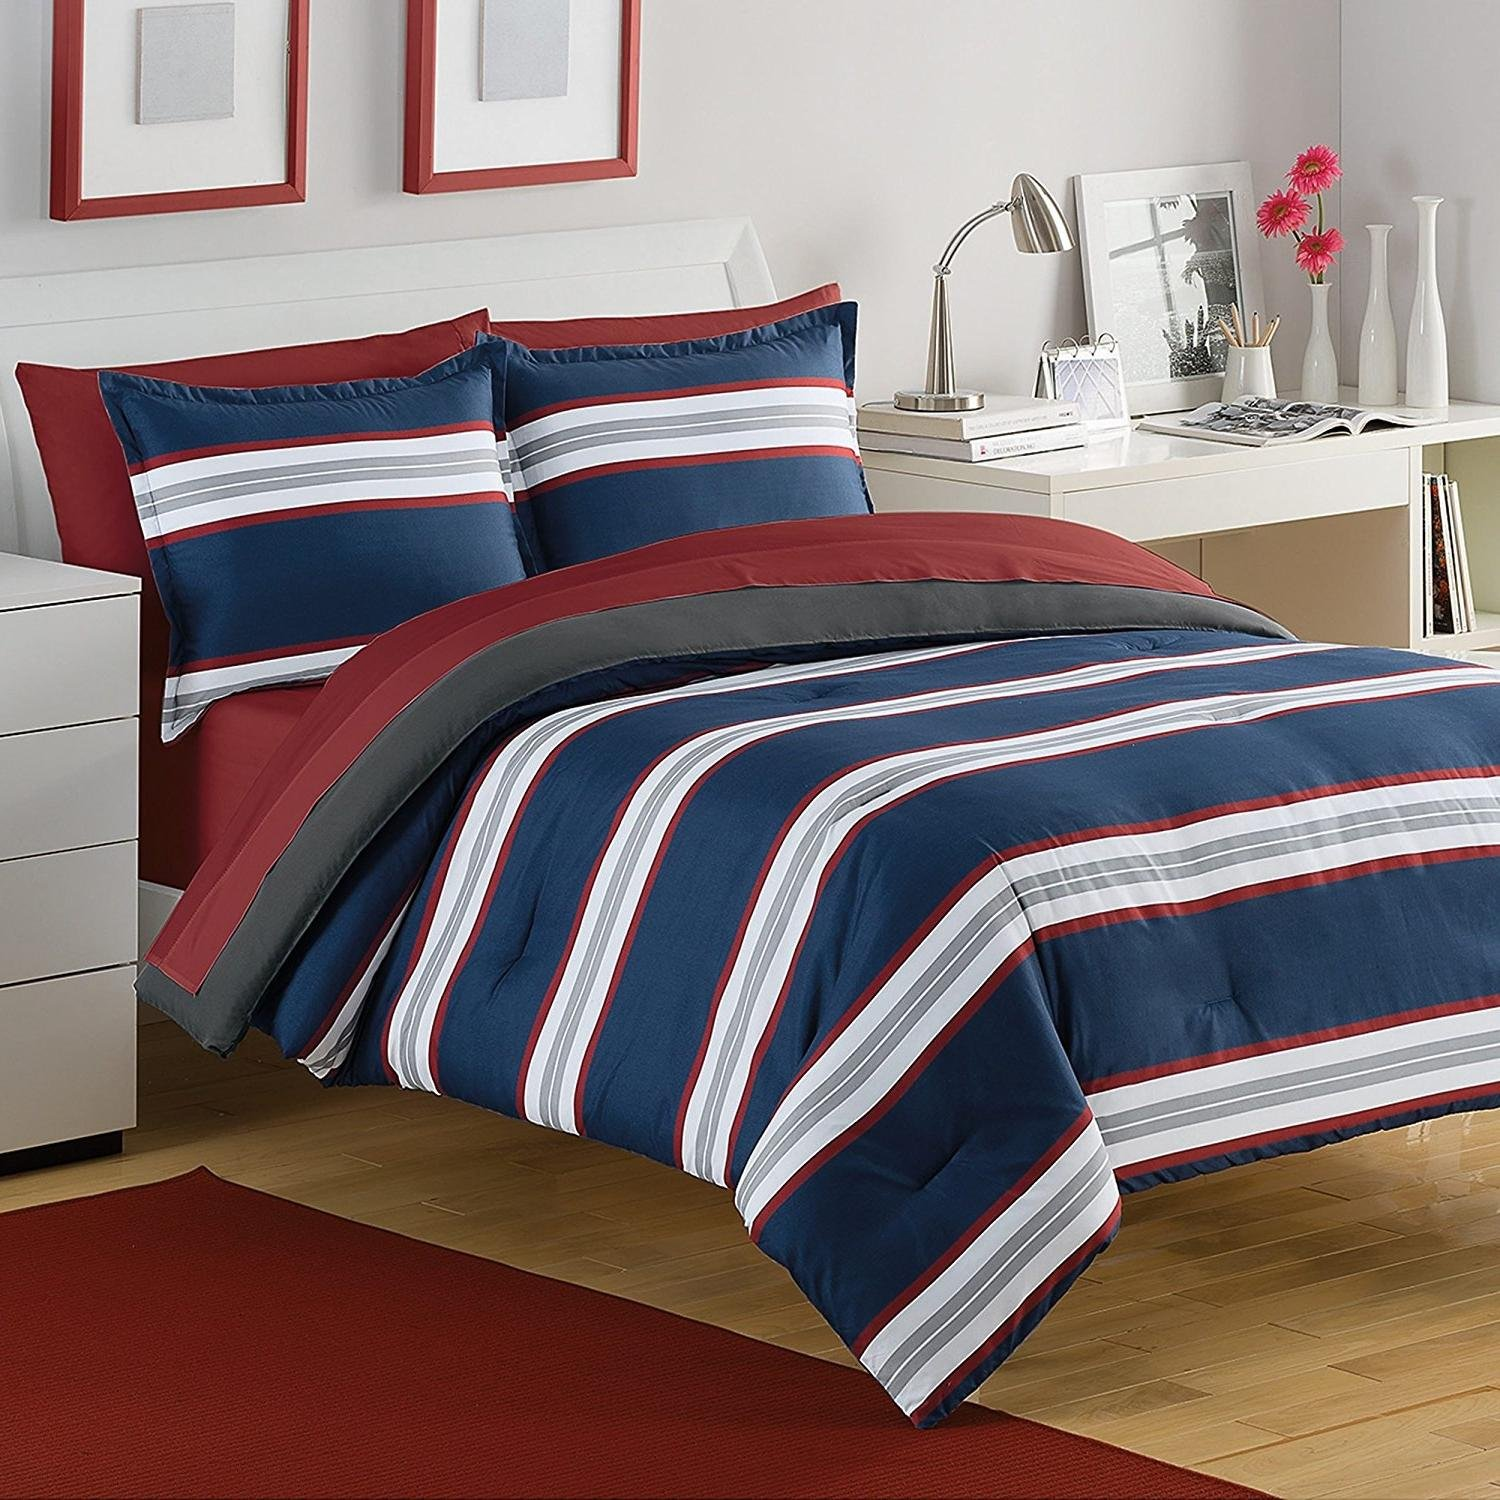 3pc Navy Blue White Grey Red Rugby Stripes Comforter Full Queen Set, Horizontal Striped Bedding Sports Themed Colors Nautical Cabana Stripe Line Pattern, Polyester